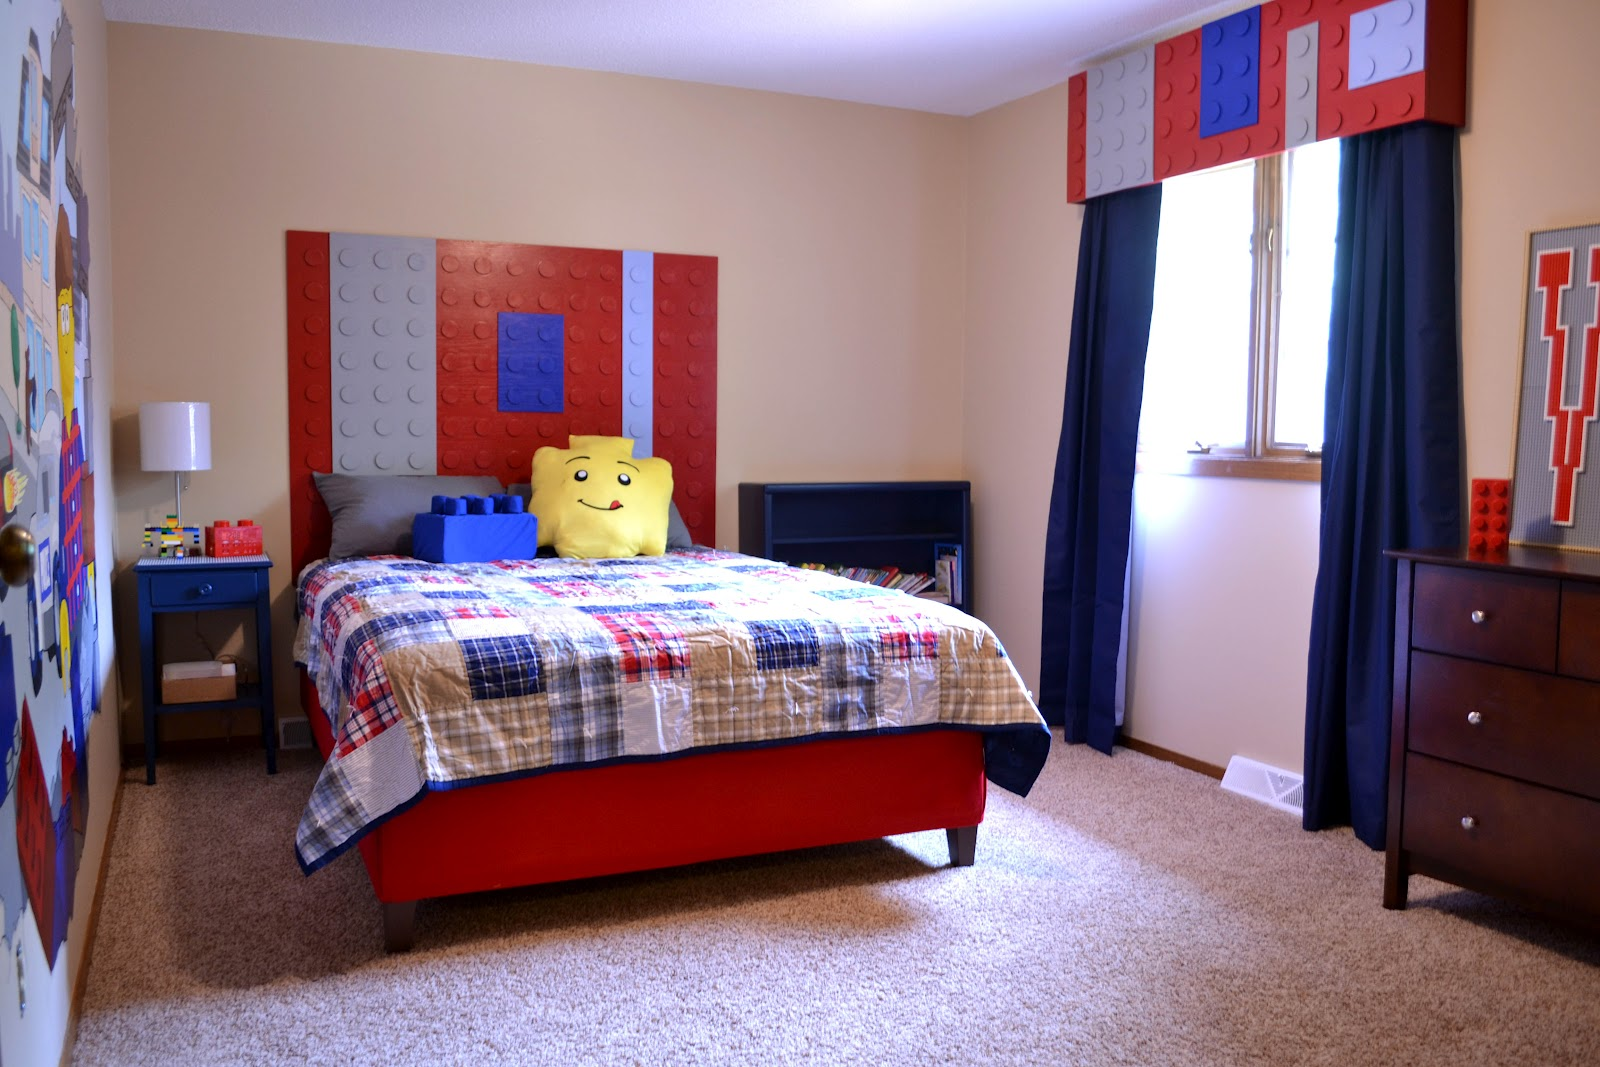 Heidi schatze lego vaughn red bright and blue for Boys red bedroom ideas